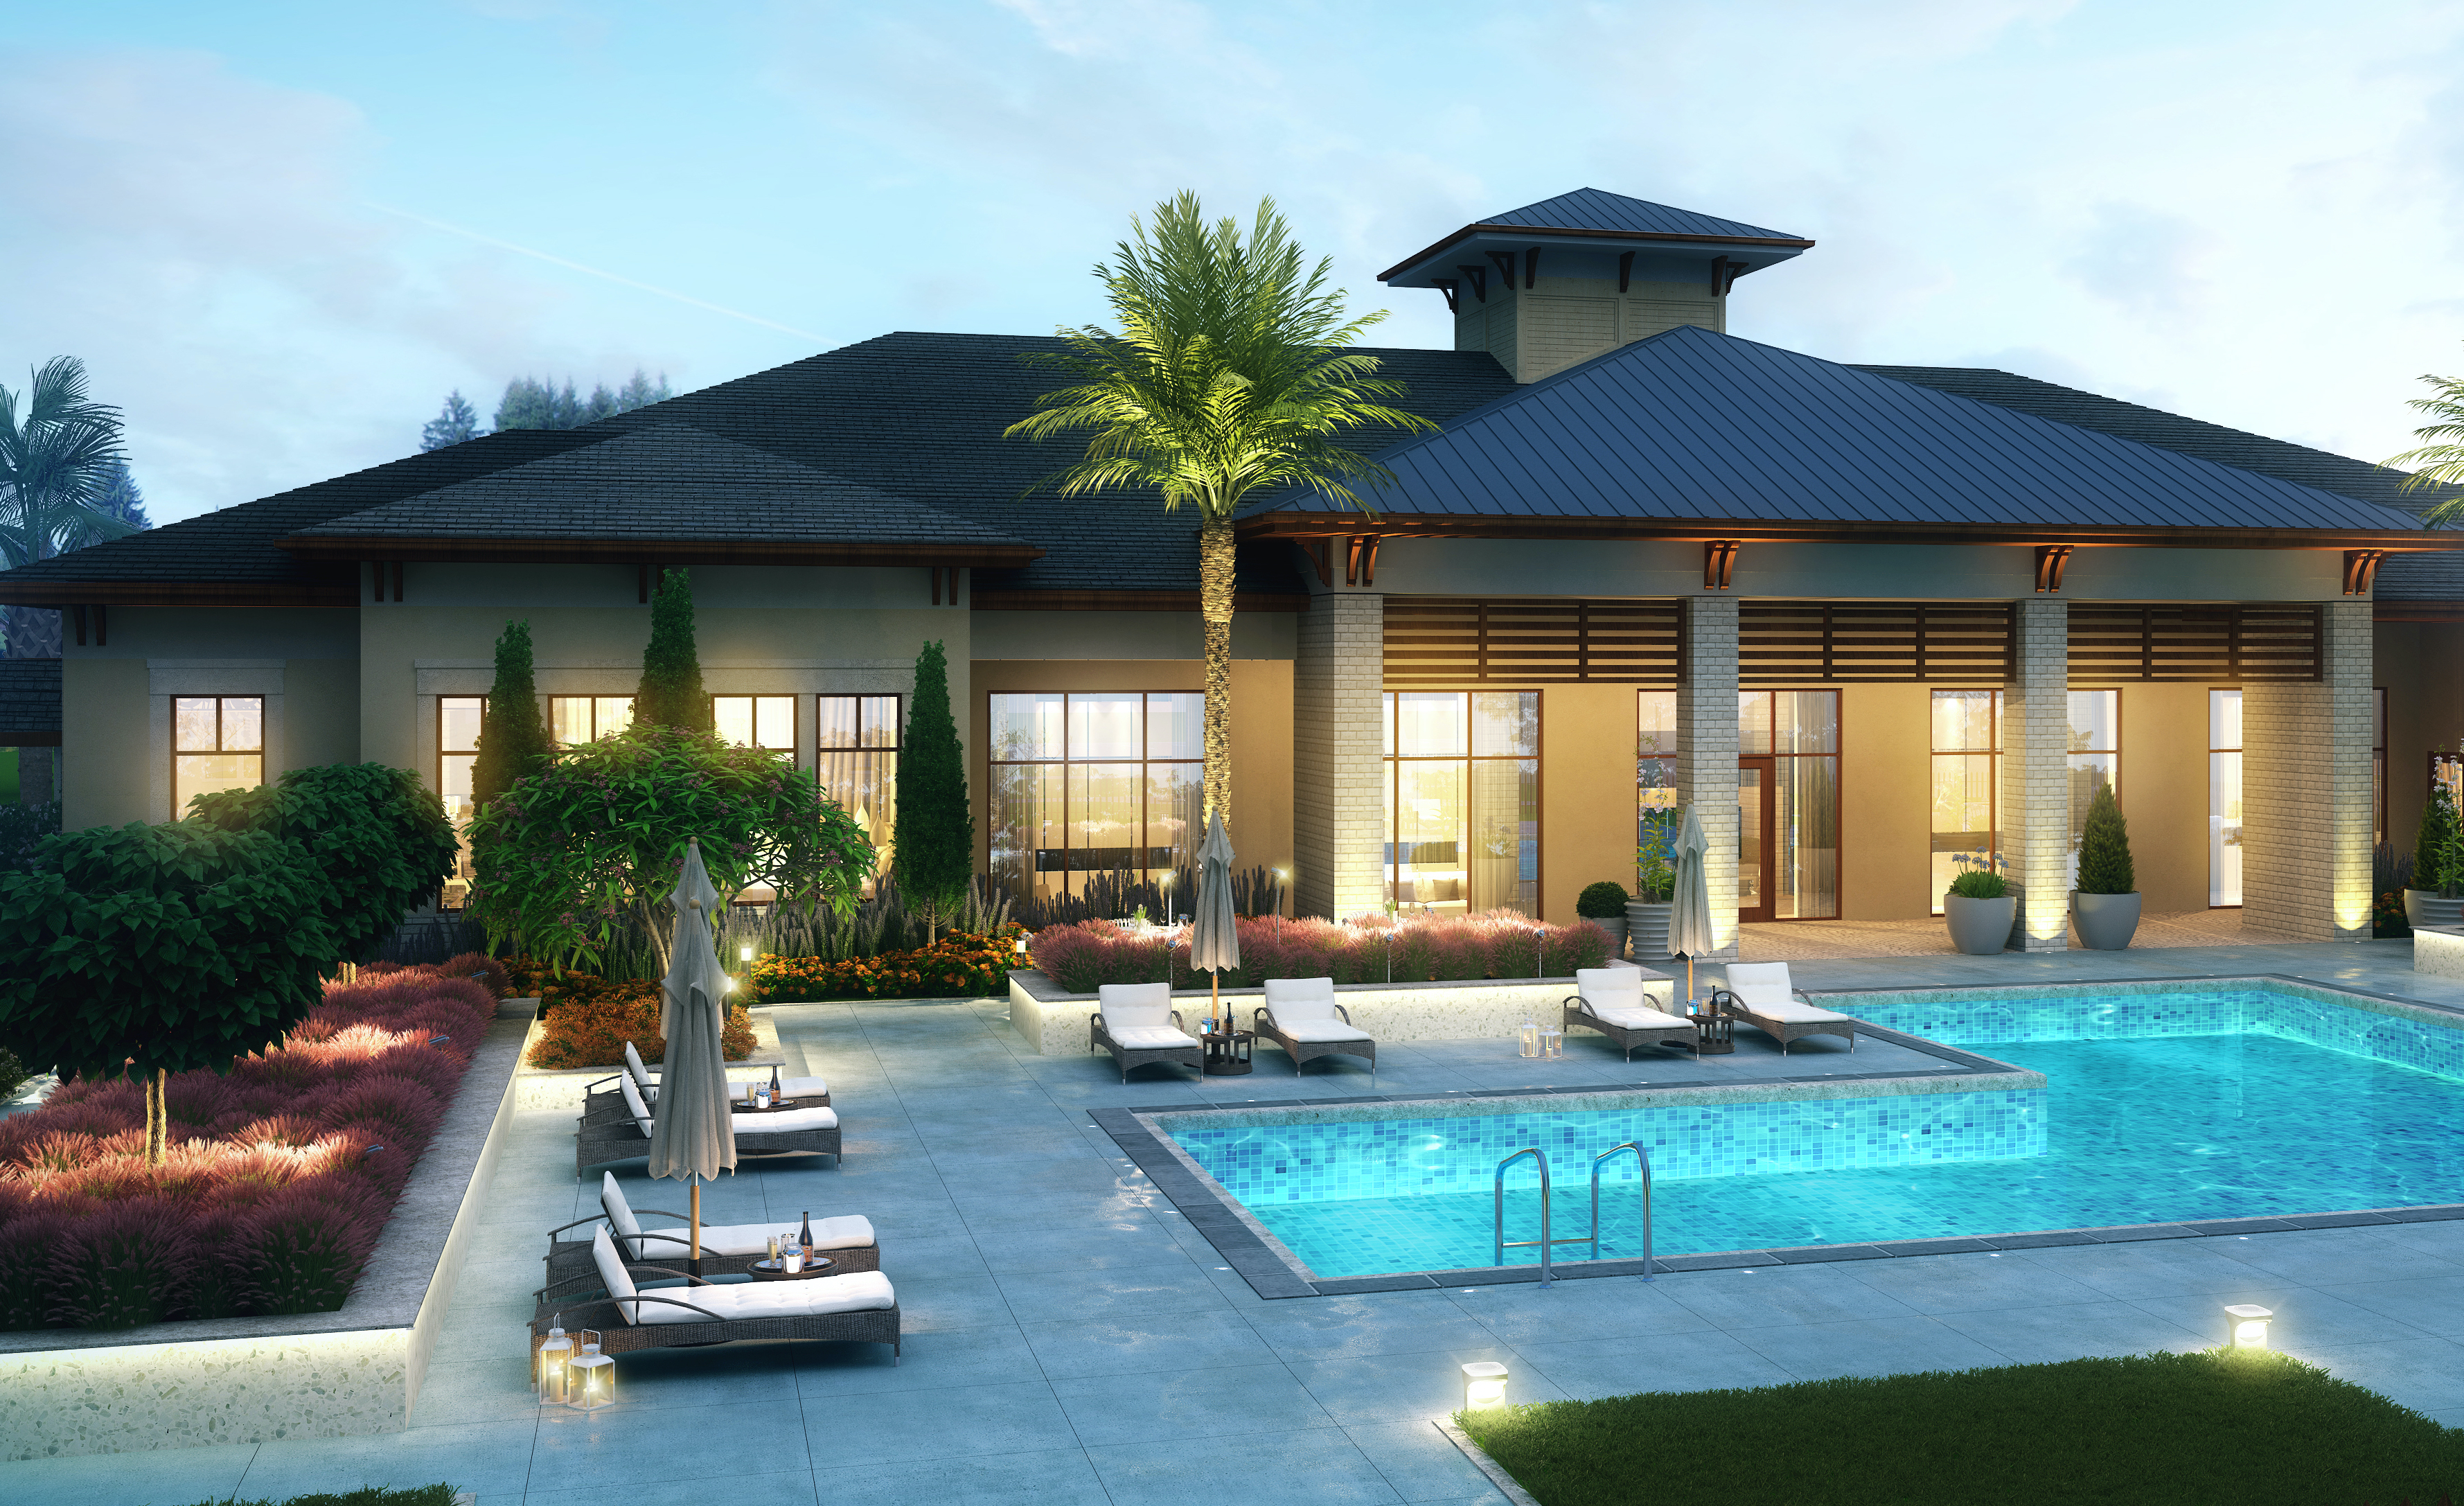 Greystar Announces New 180-Unit Vibrant Resort Lifestyle Active Adult Community Development in Winter Garden, Florida